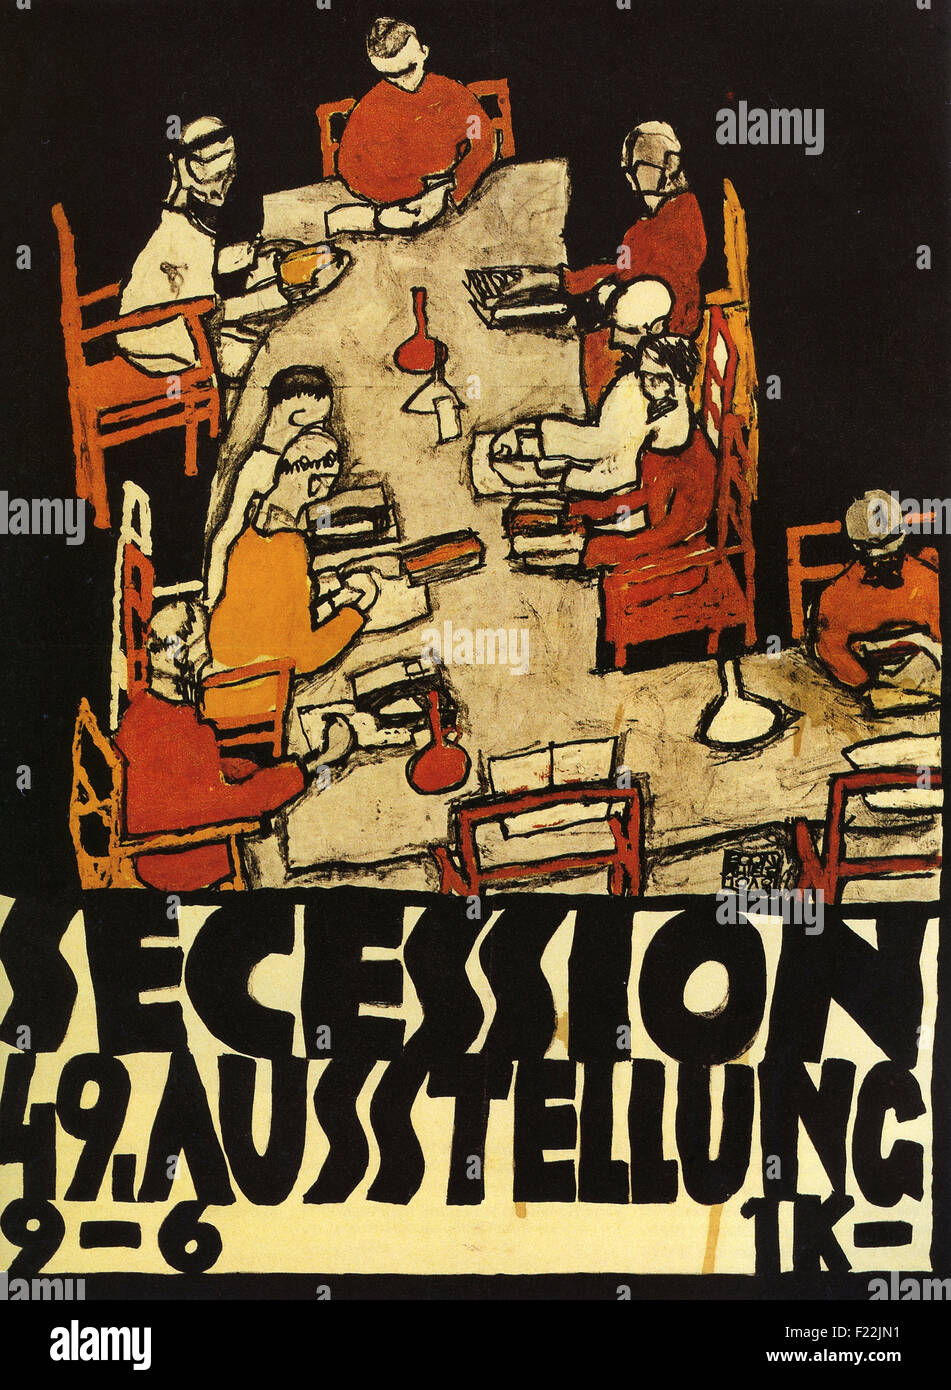 Egon Schiele - Poster for the Vienna Secession, 49th Exhibition, Die Freunde - Stock Image